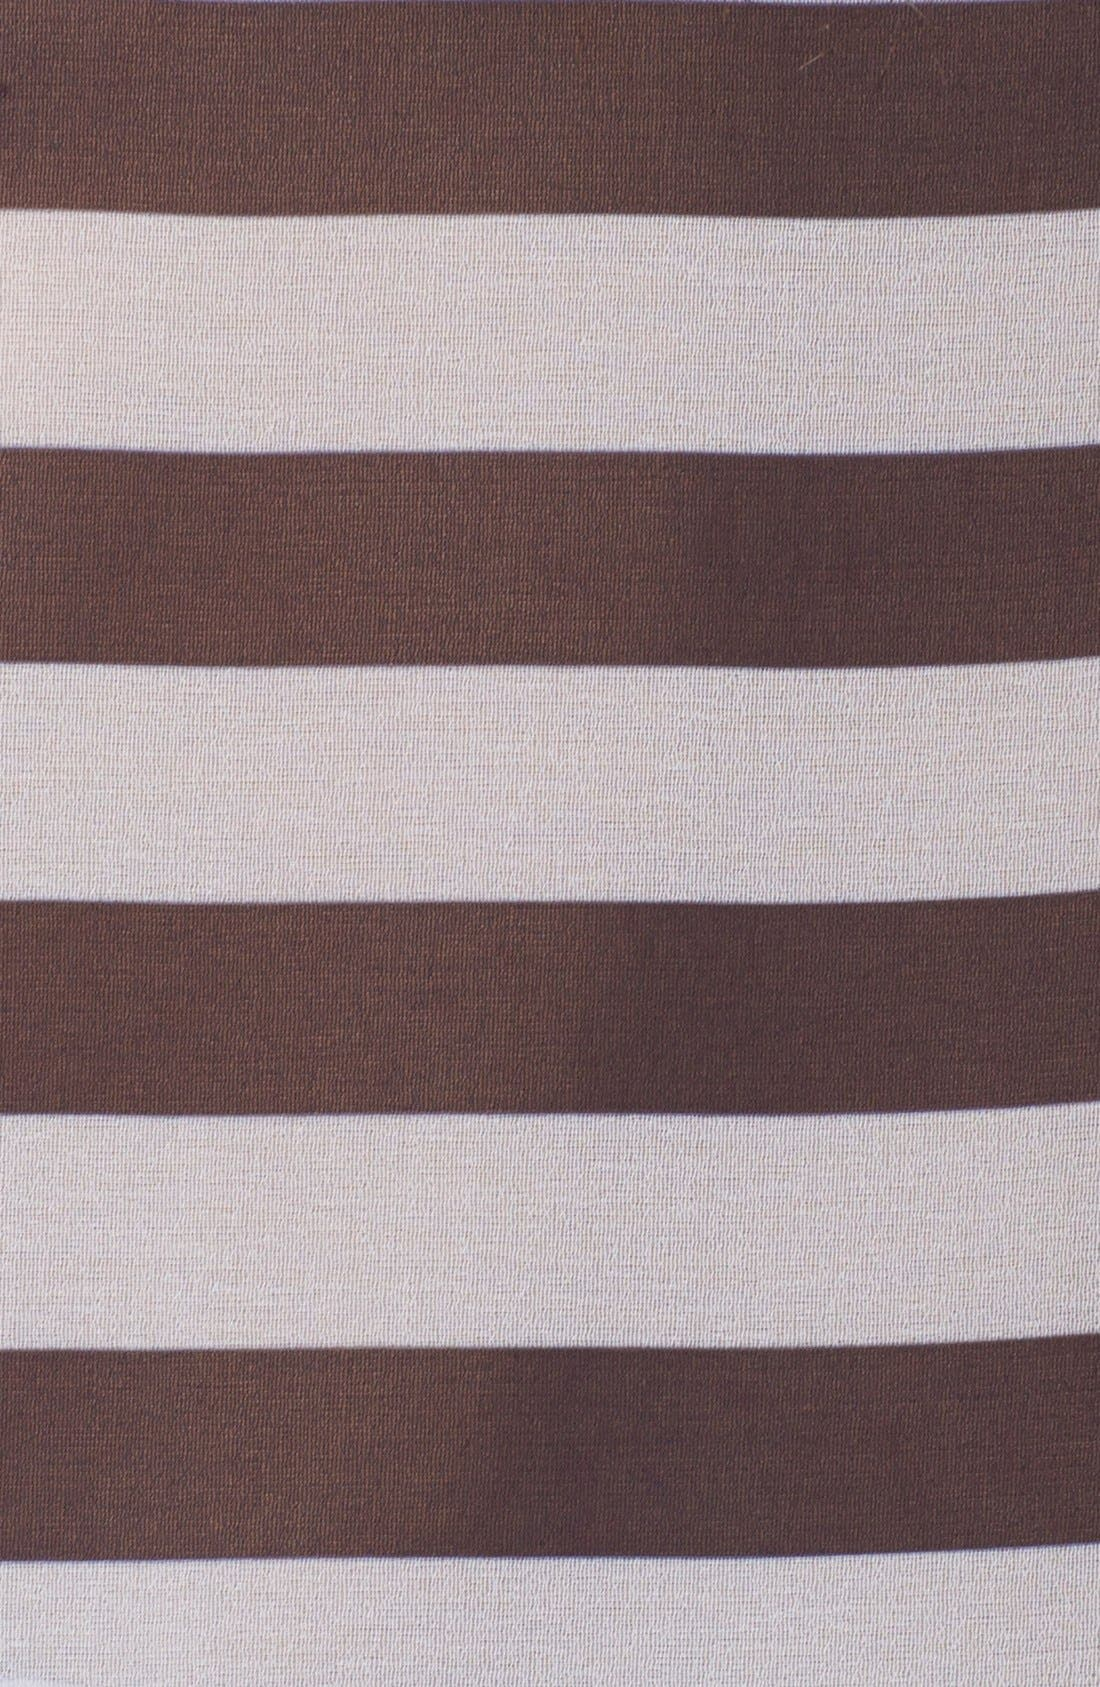 Alternate Image 3  - Ted Baker London Stripe Cover-Up Tunic